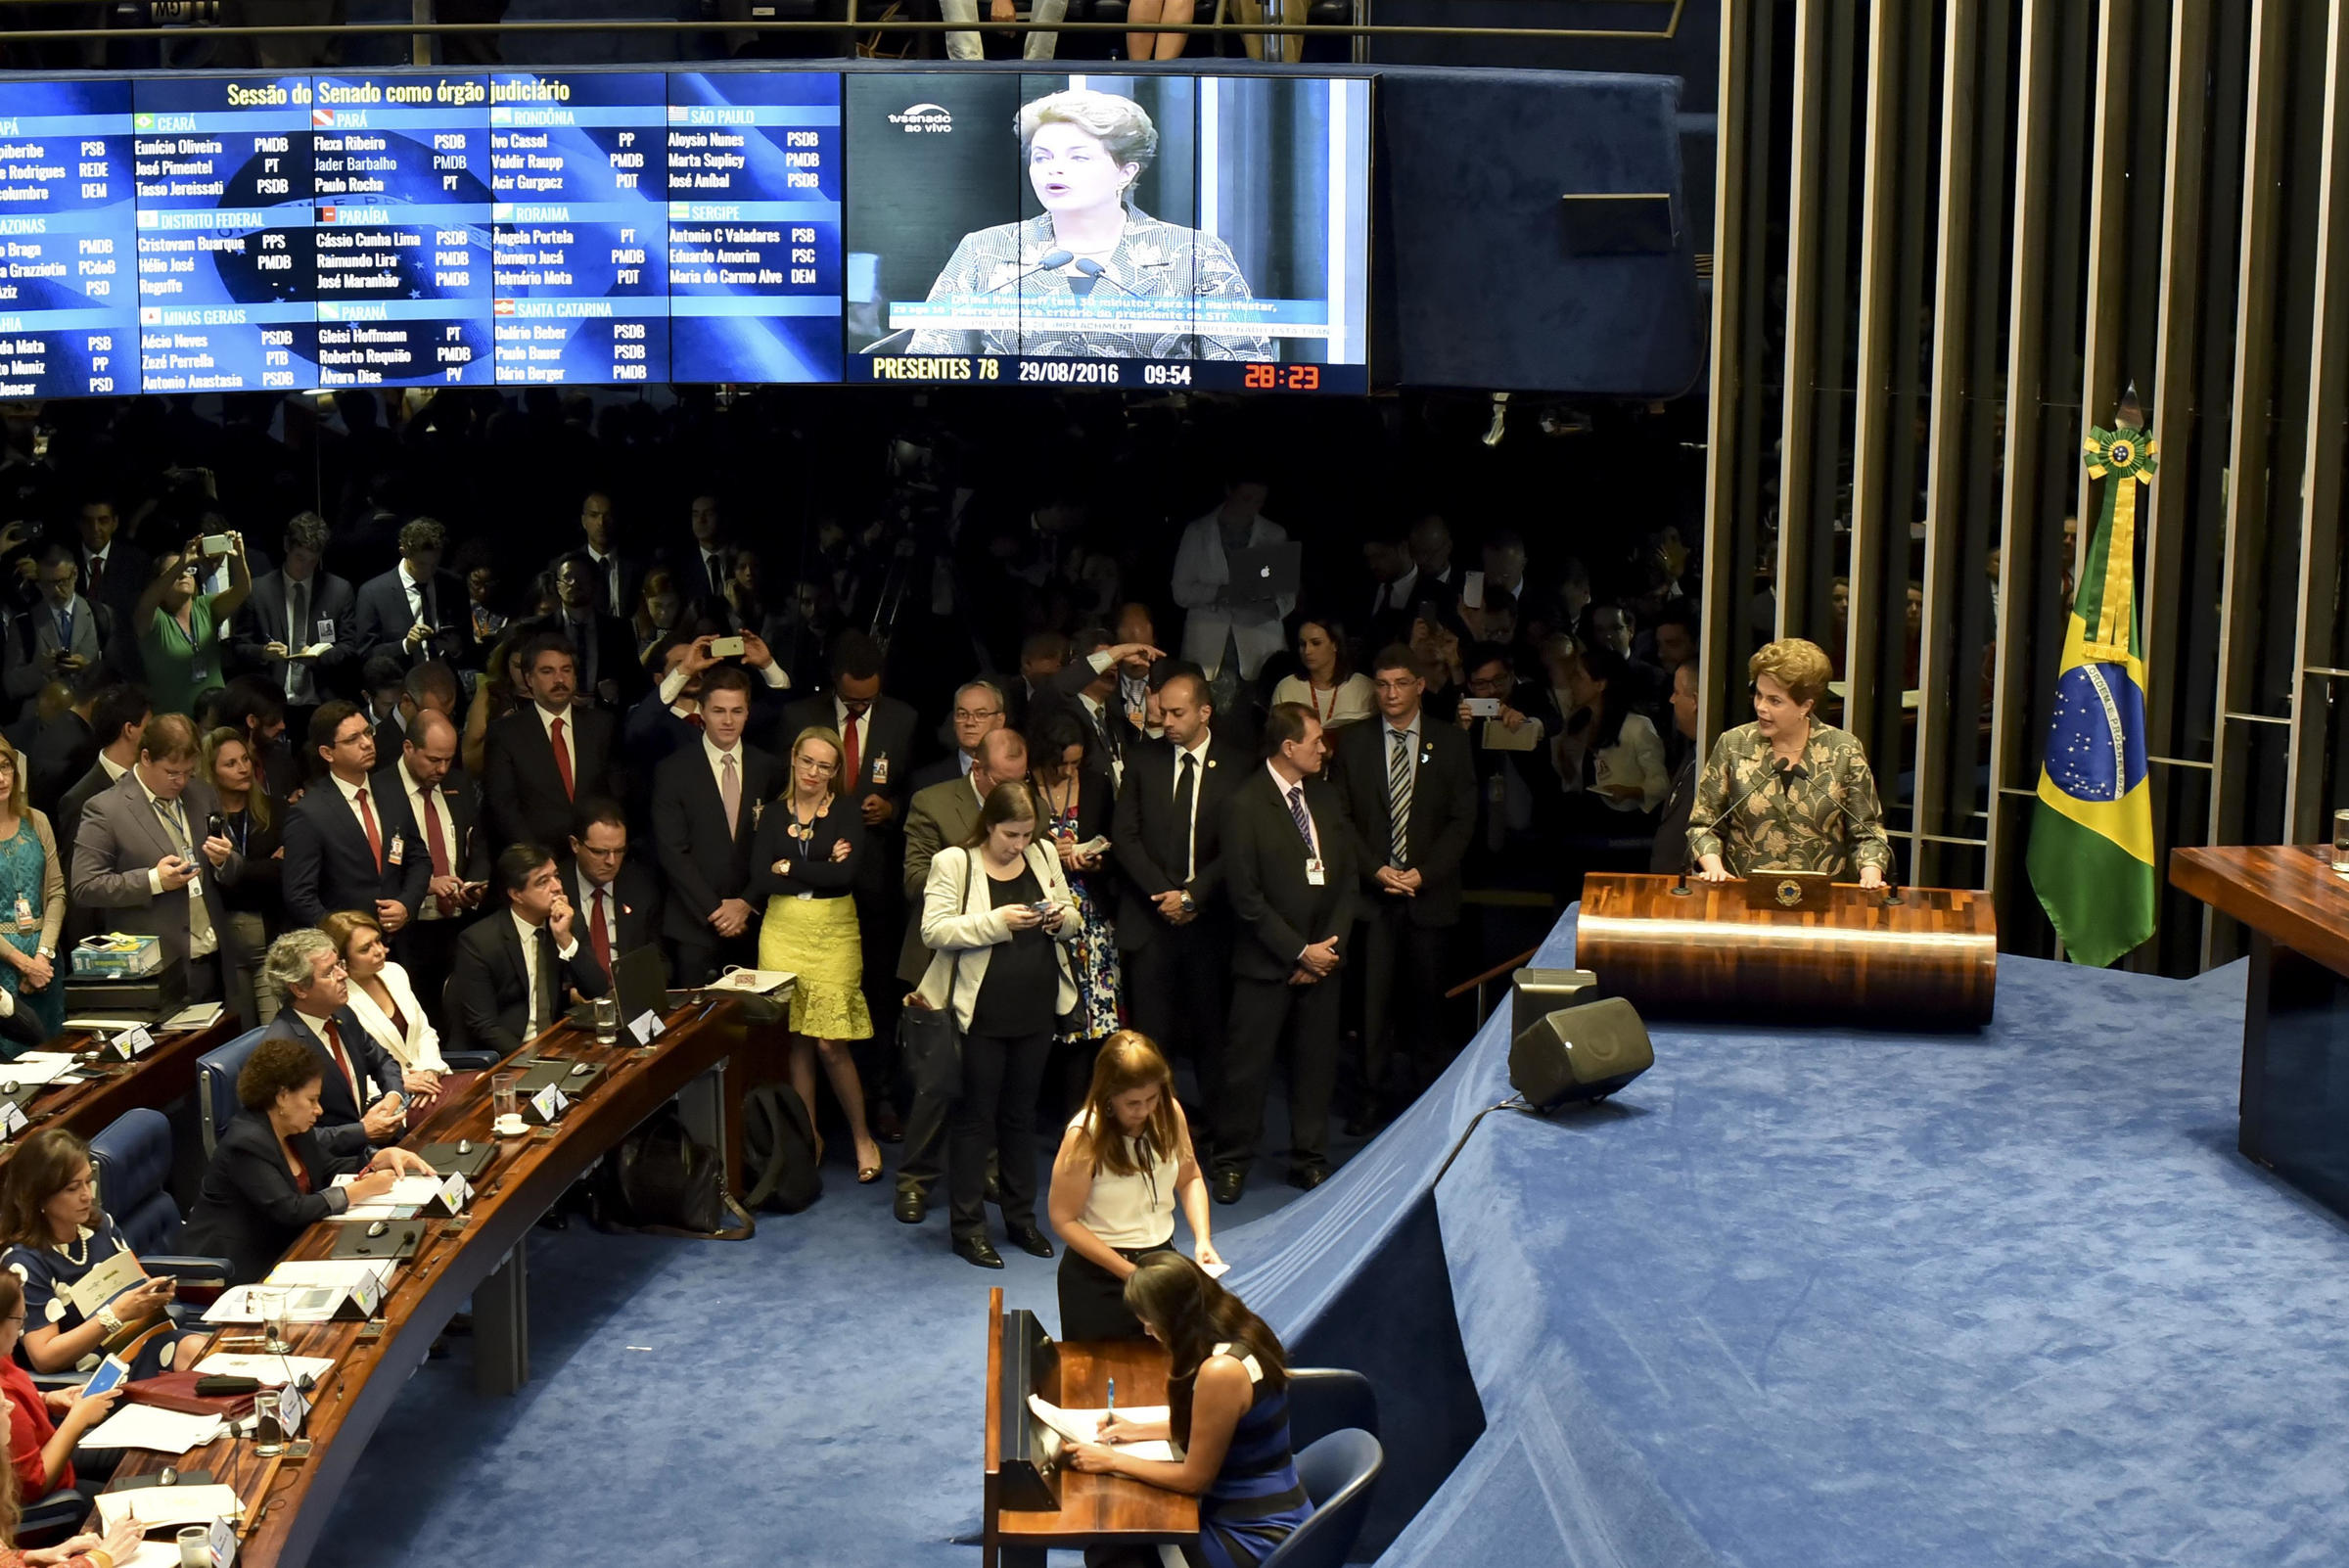 Brazil Senate Expected to Vote in the Afternoon on Rousseff Ouster